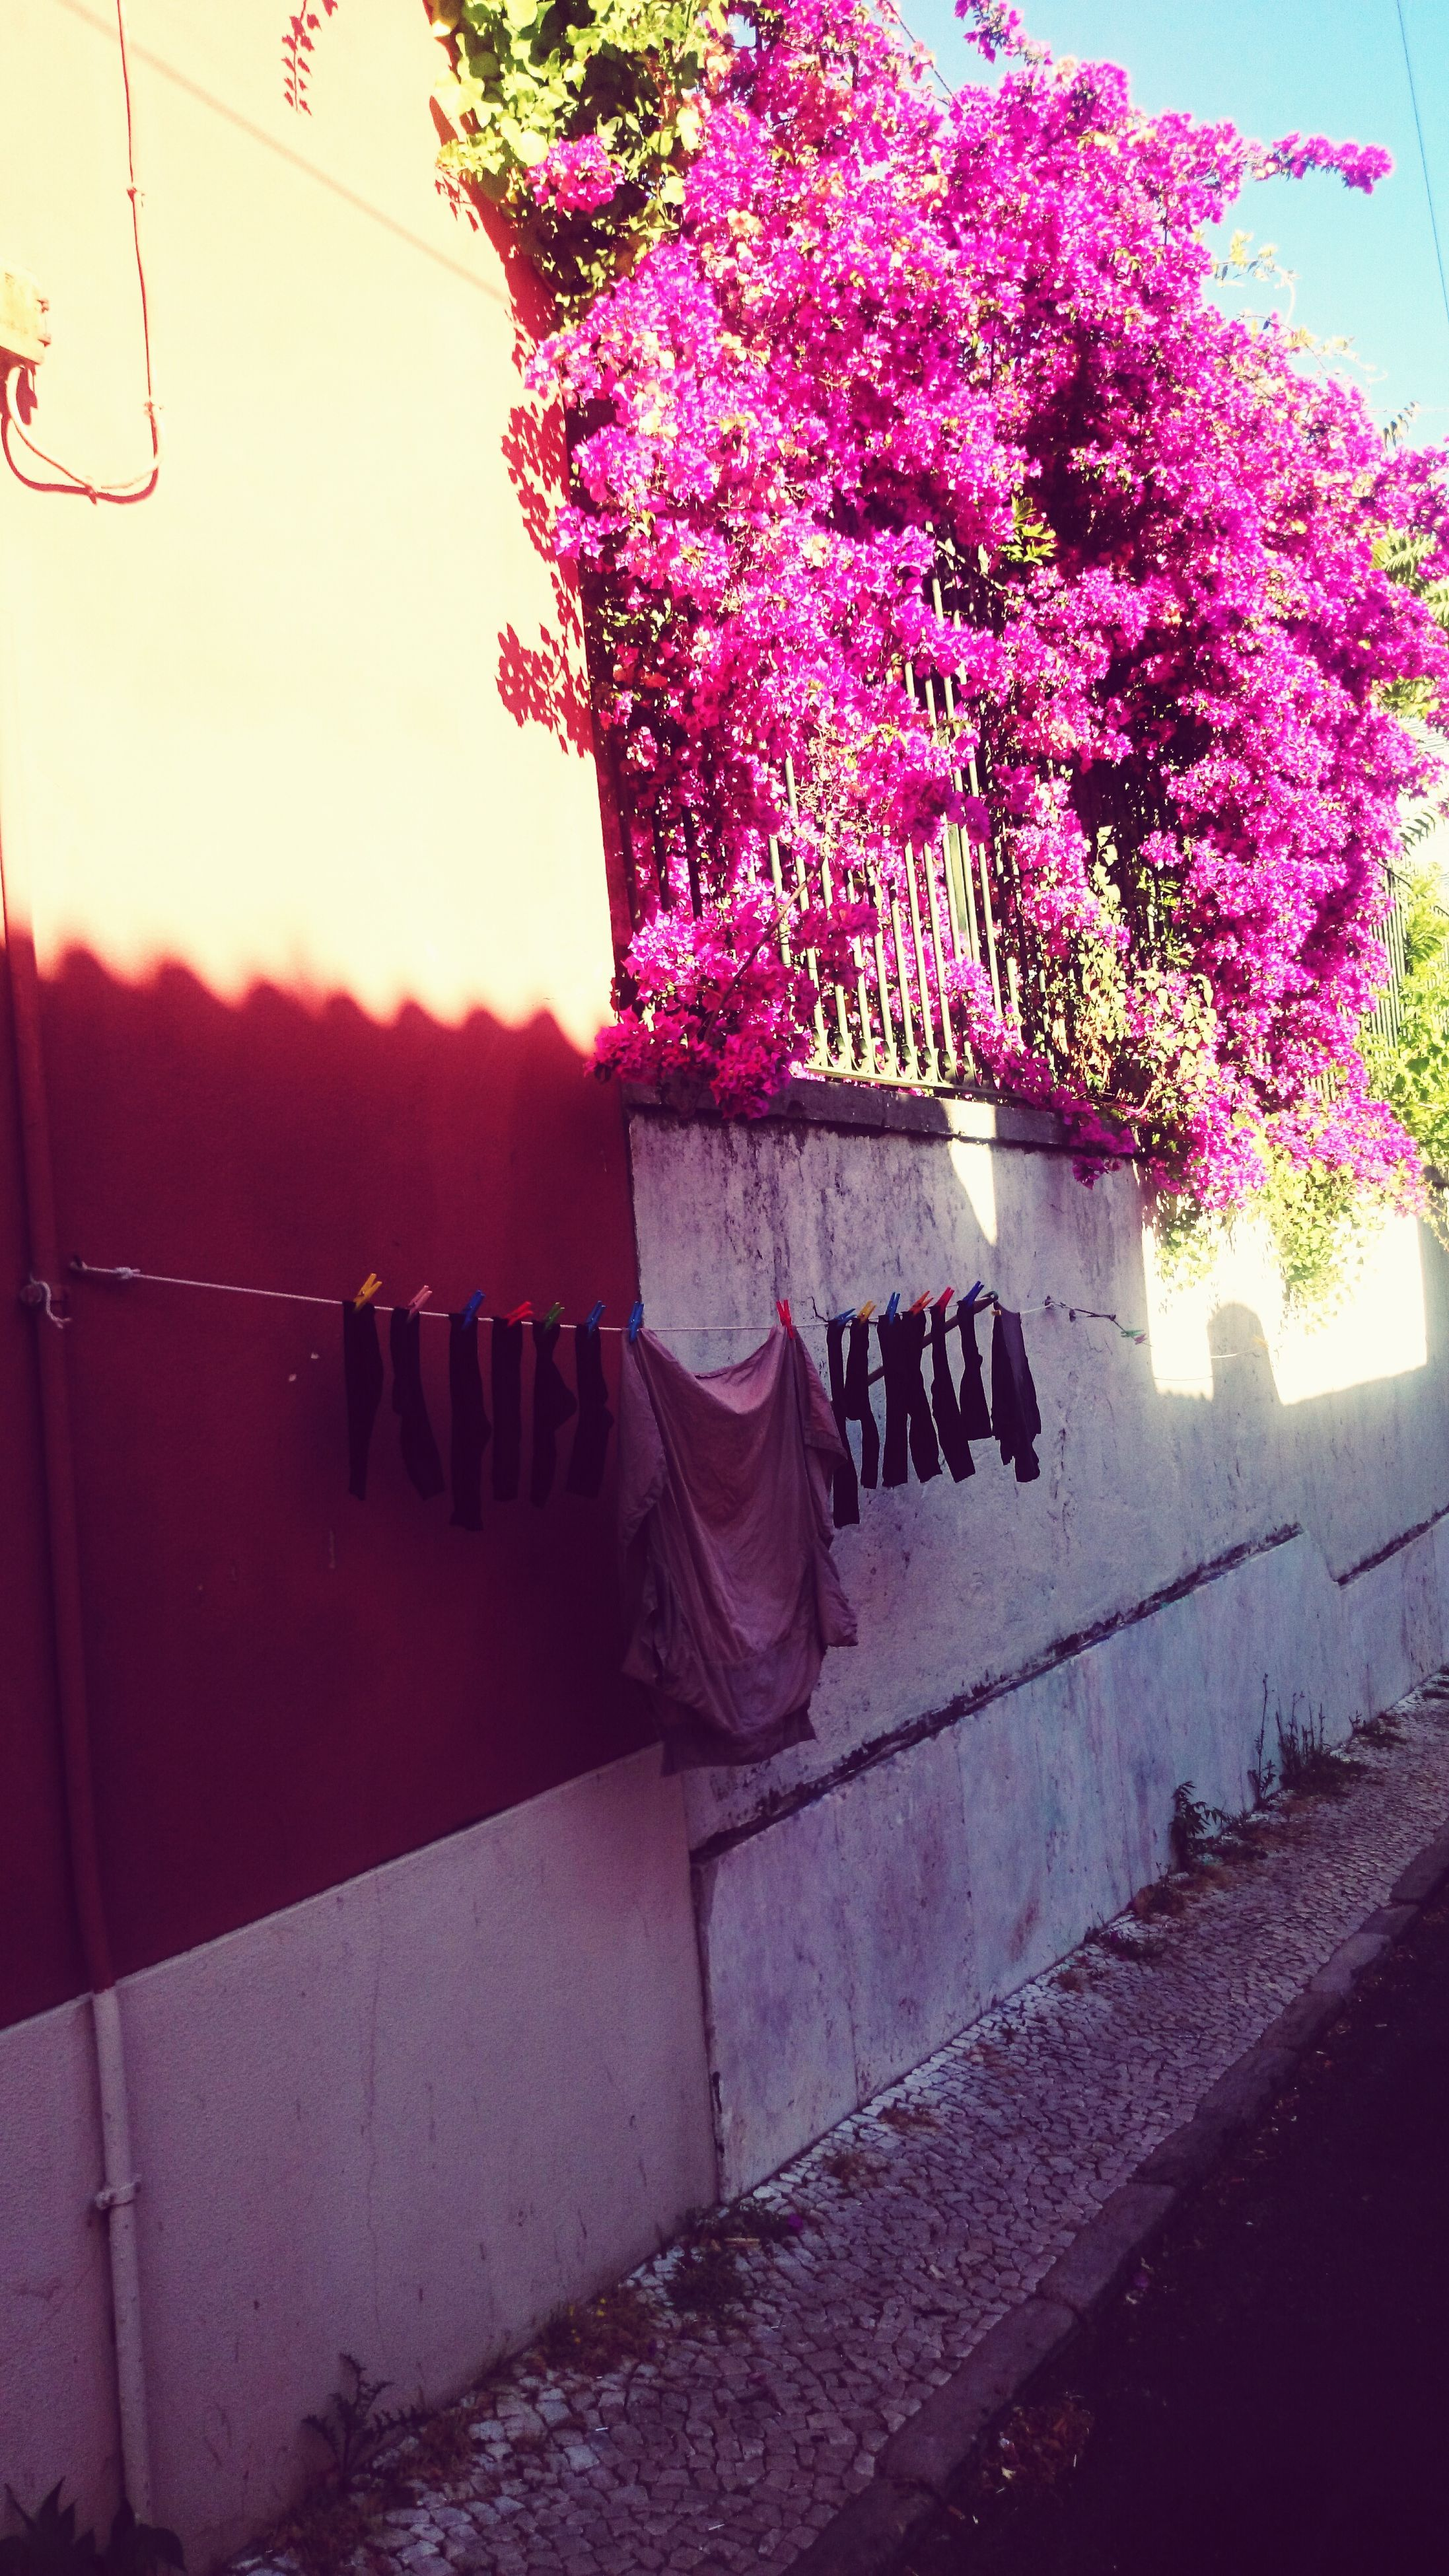 flower, pink color, growth, plant, wall - building feature, text, sunlight, no people, built structure, day, nature, tree, potted plant, outdoors, architecture, building exterior, decoration, close-up, fragility, western script